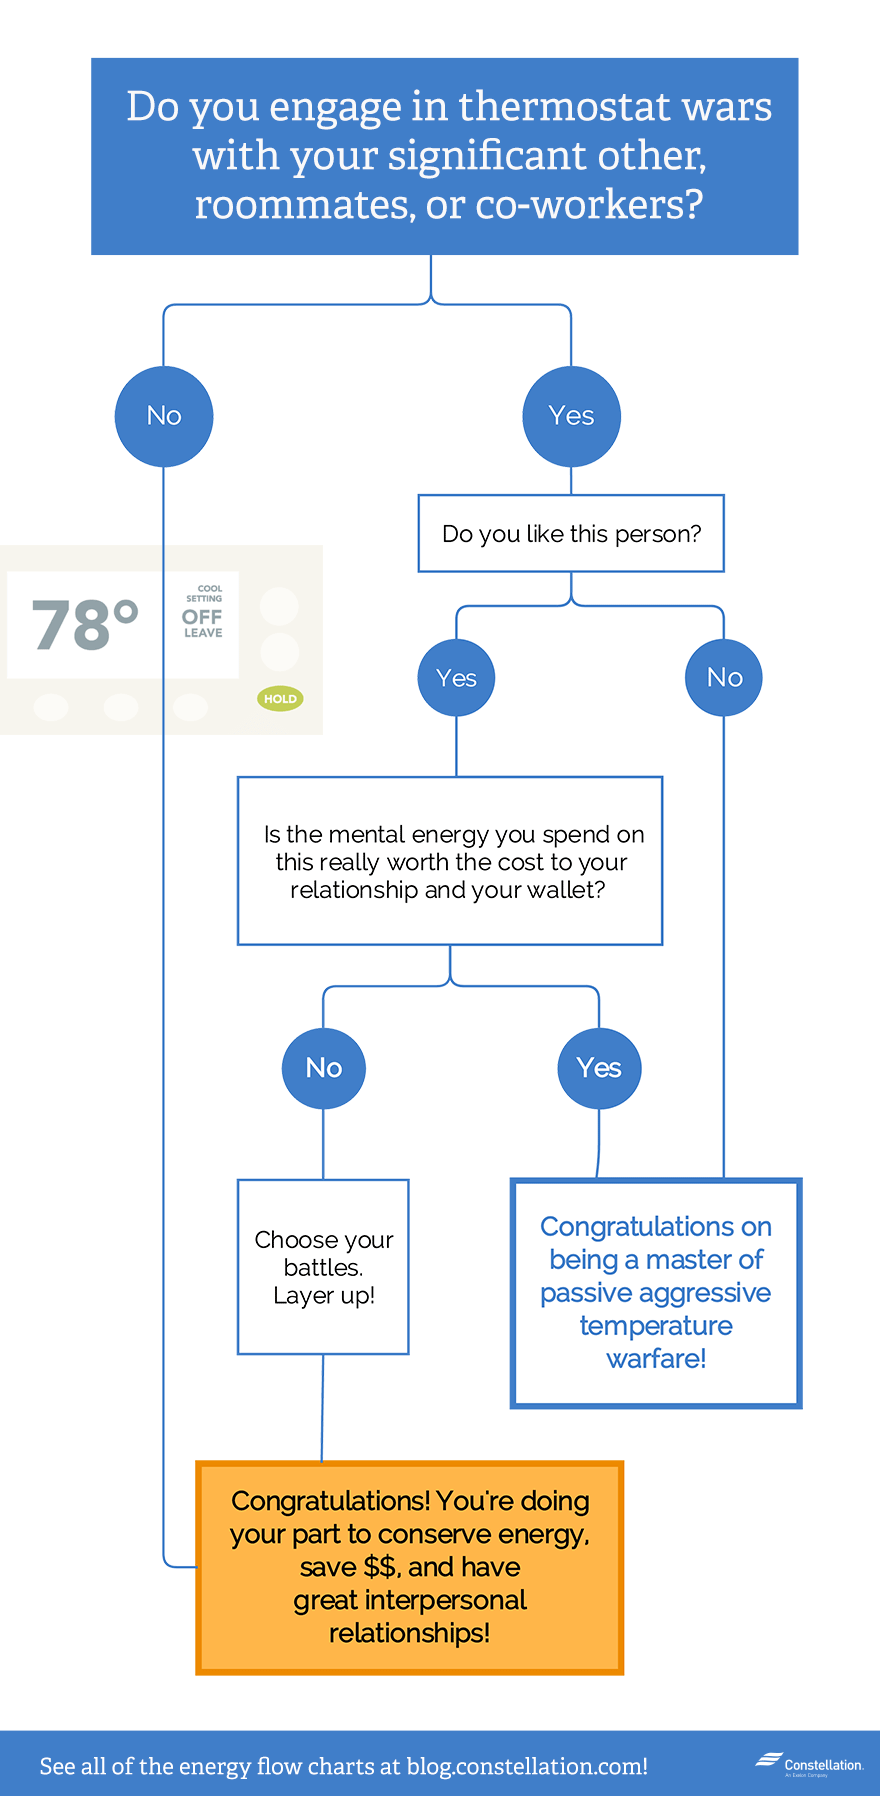 Do you engage in thermostat wars? (Flowchart)